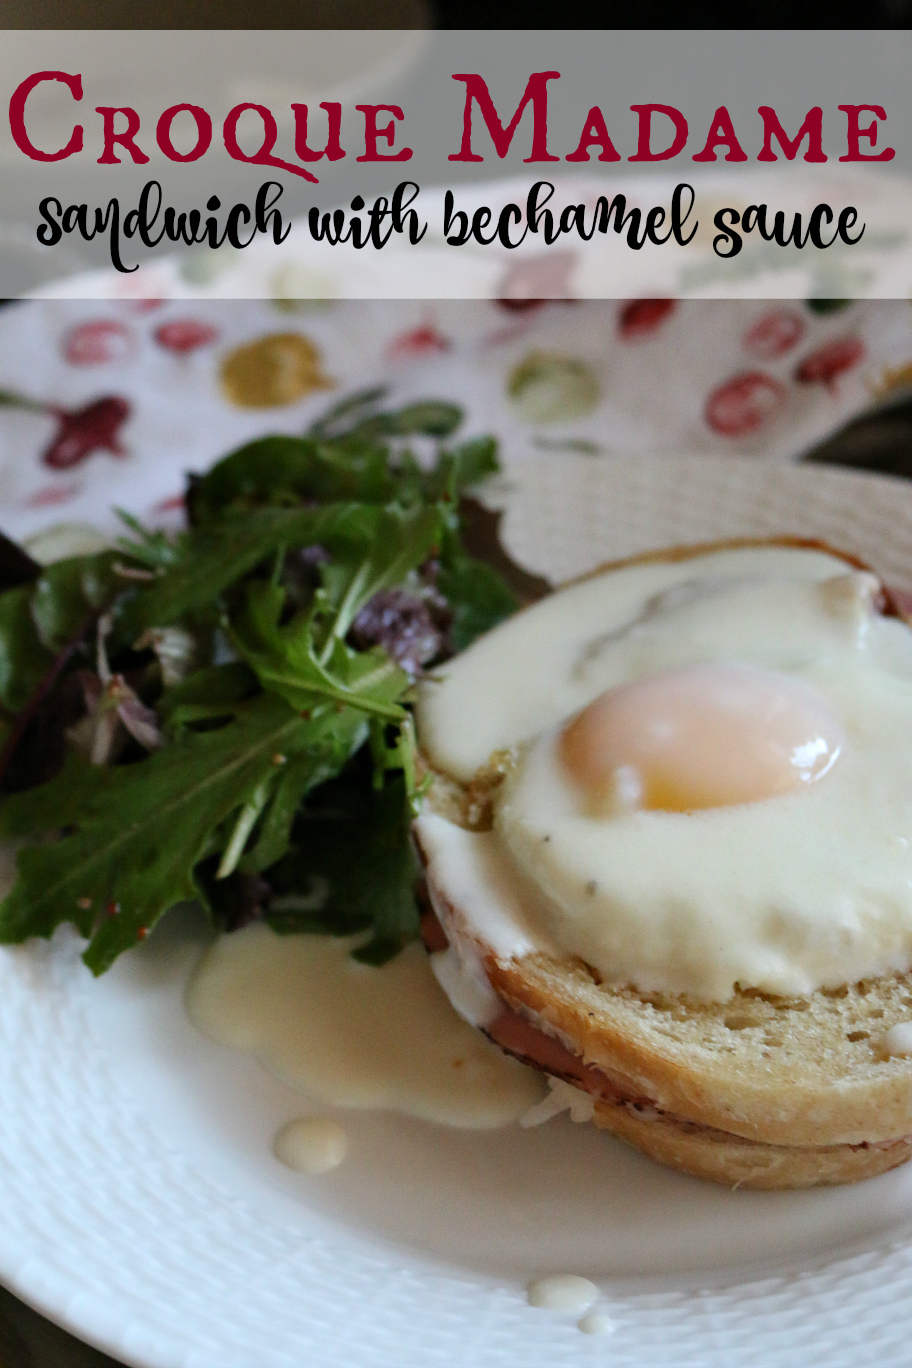 An easy recipe for choquet madame sandwich with bechamel sauce CeceliasGoodStuff.com | Good Food for Good People